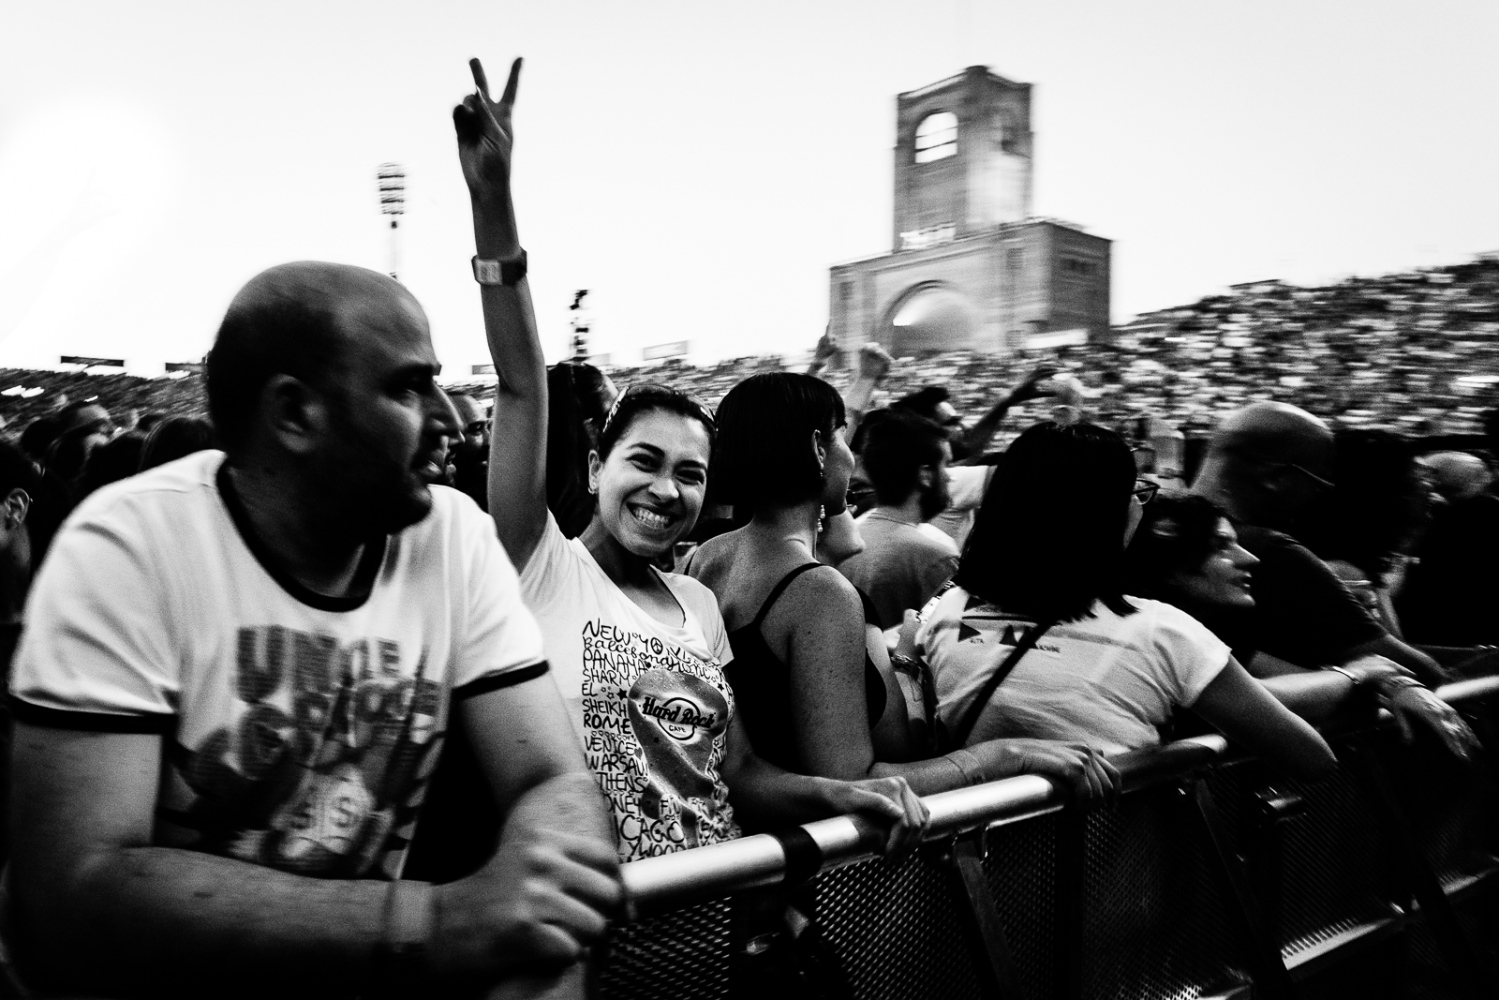 Audience at the Depeche Mode concert Aaudience during the Depeche Mode concert in Bologna